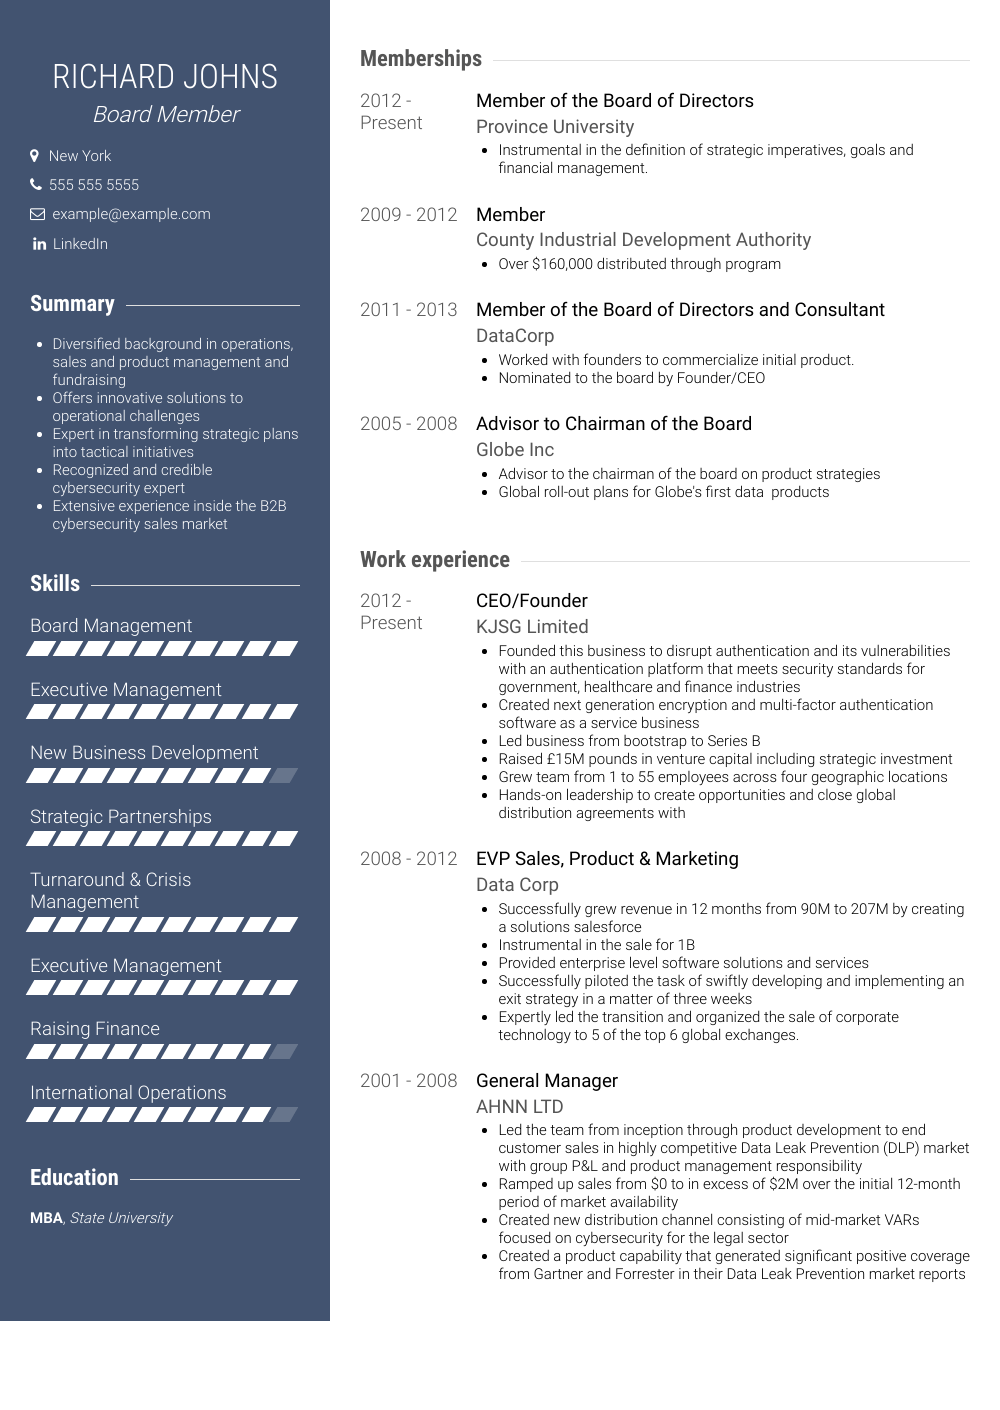 Board Member Resume Samples & Templates VisualCV